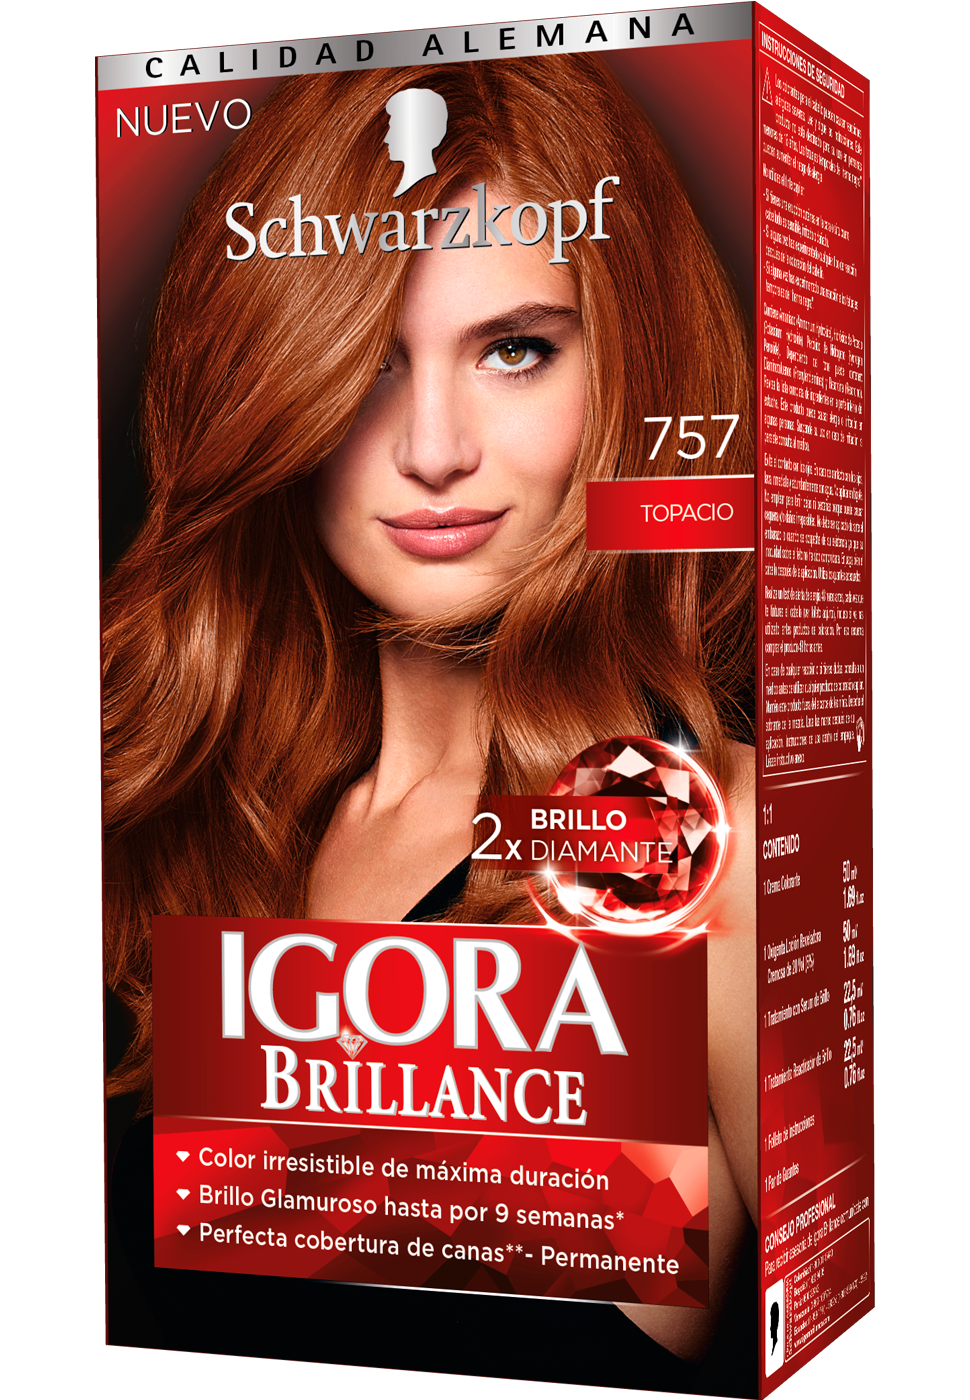 Igora brillance 757 topacio